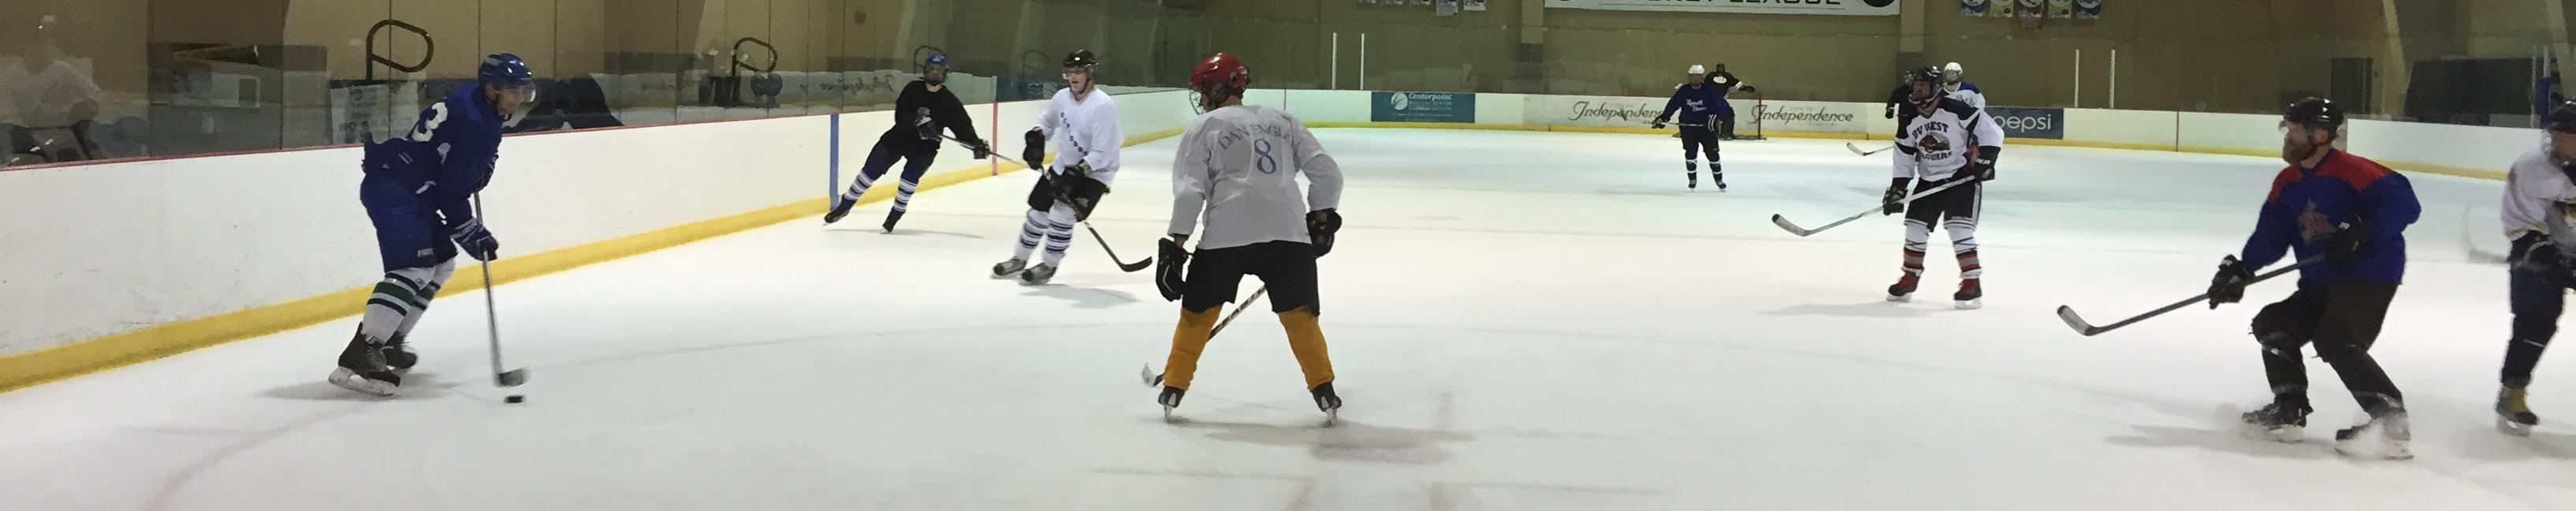 adult hockey for beginners